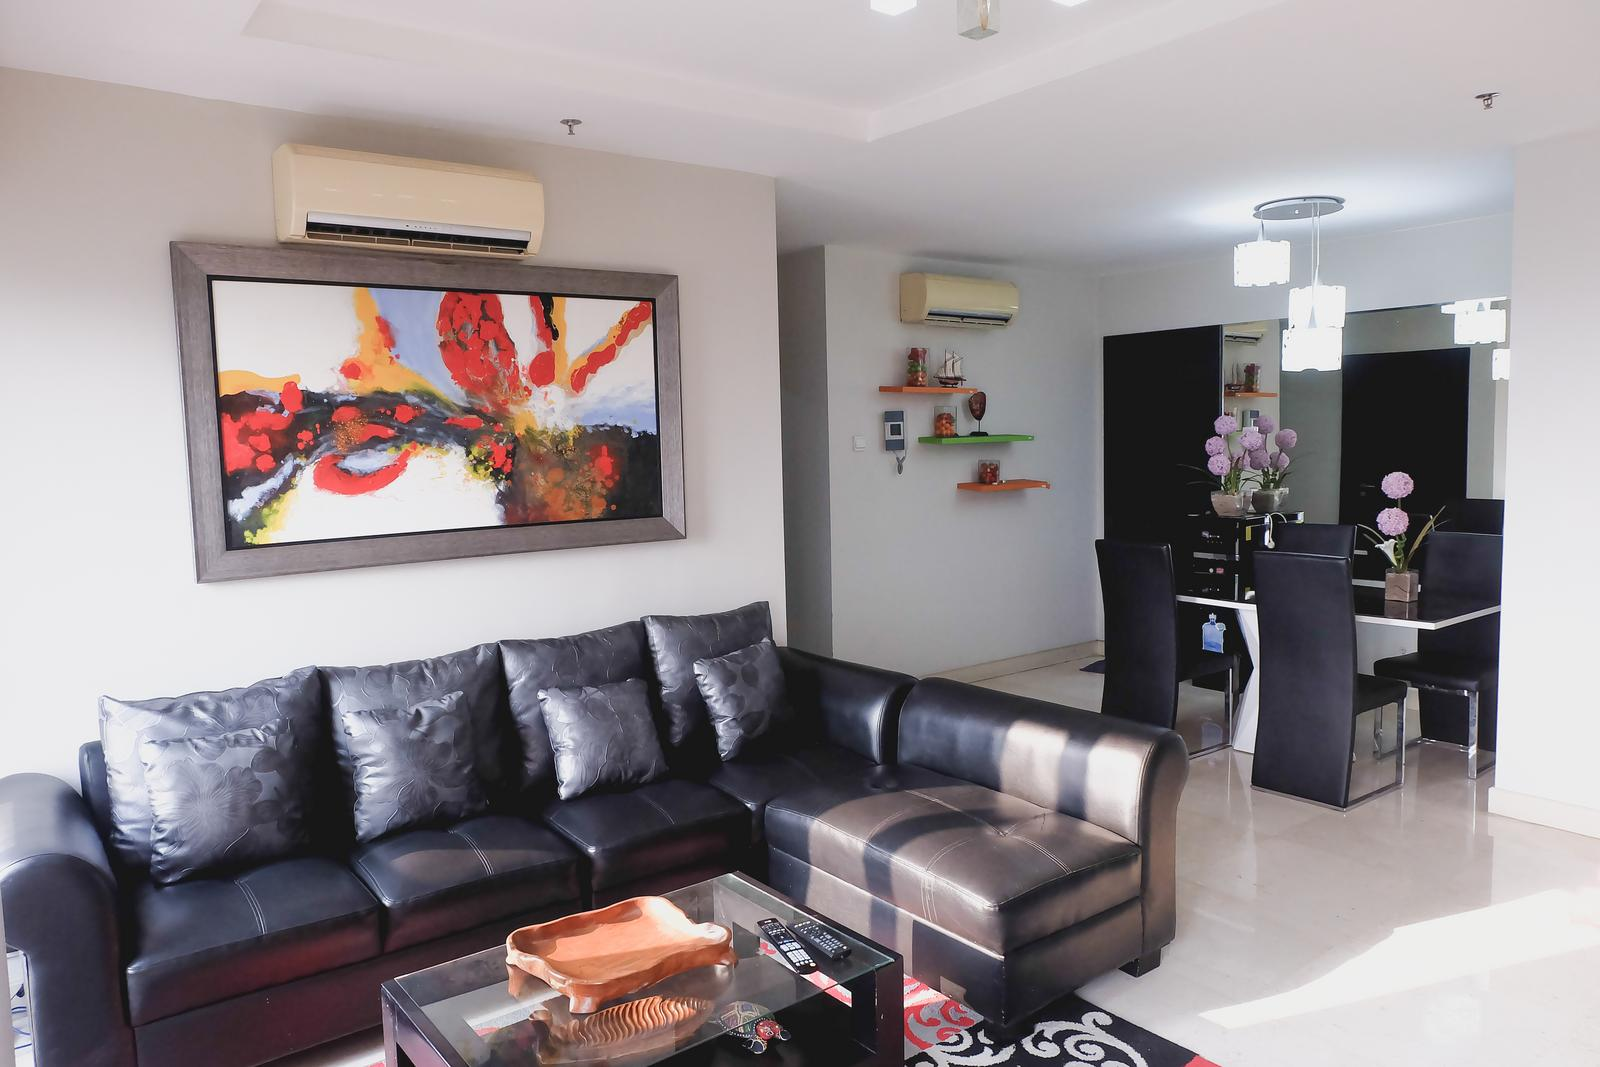 Somerset Berlian Kebayoran Lama - 2BR Premium Berlian Permata Hijau Apartment By Travelio